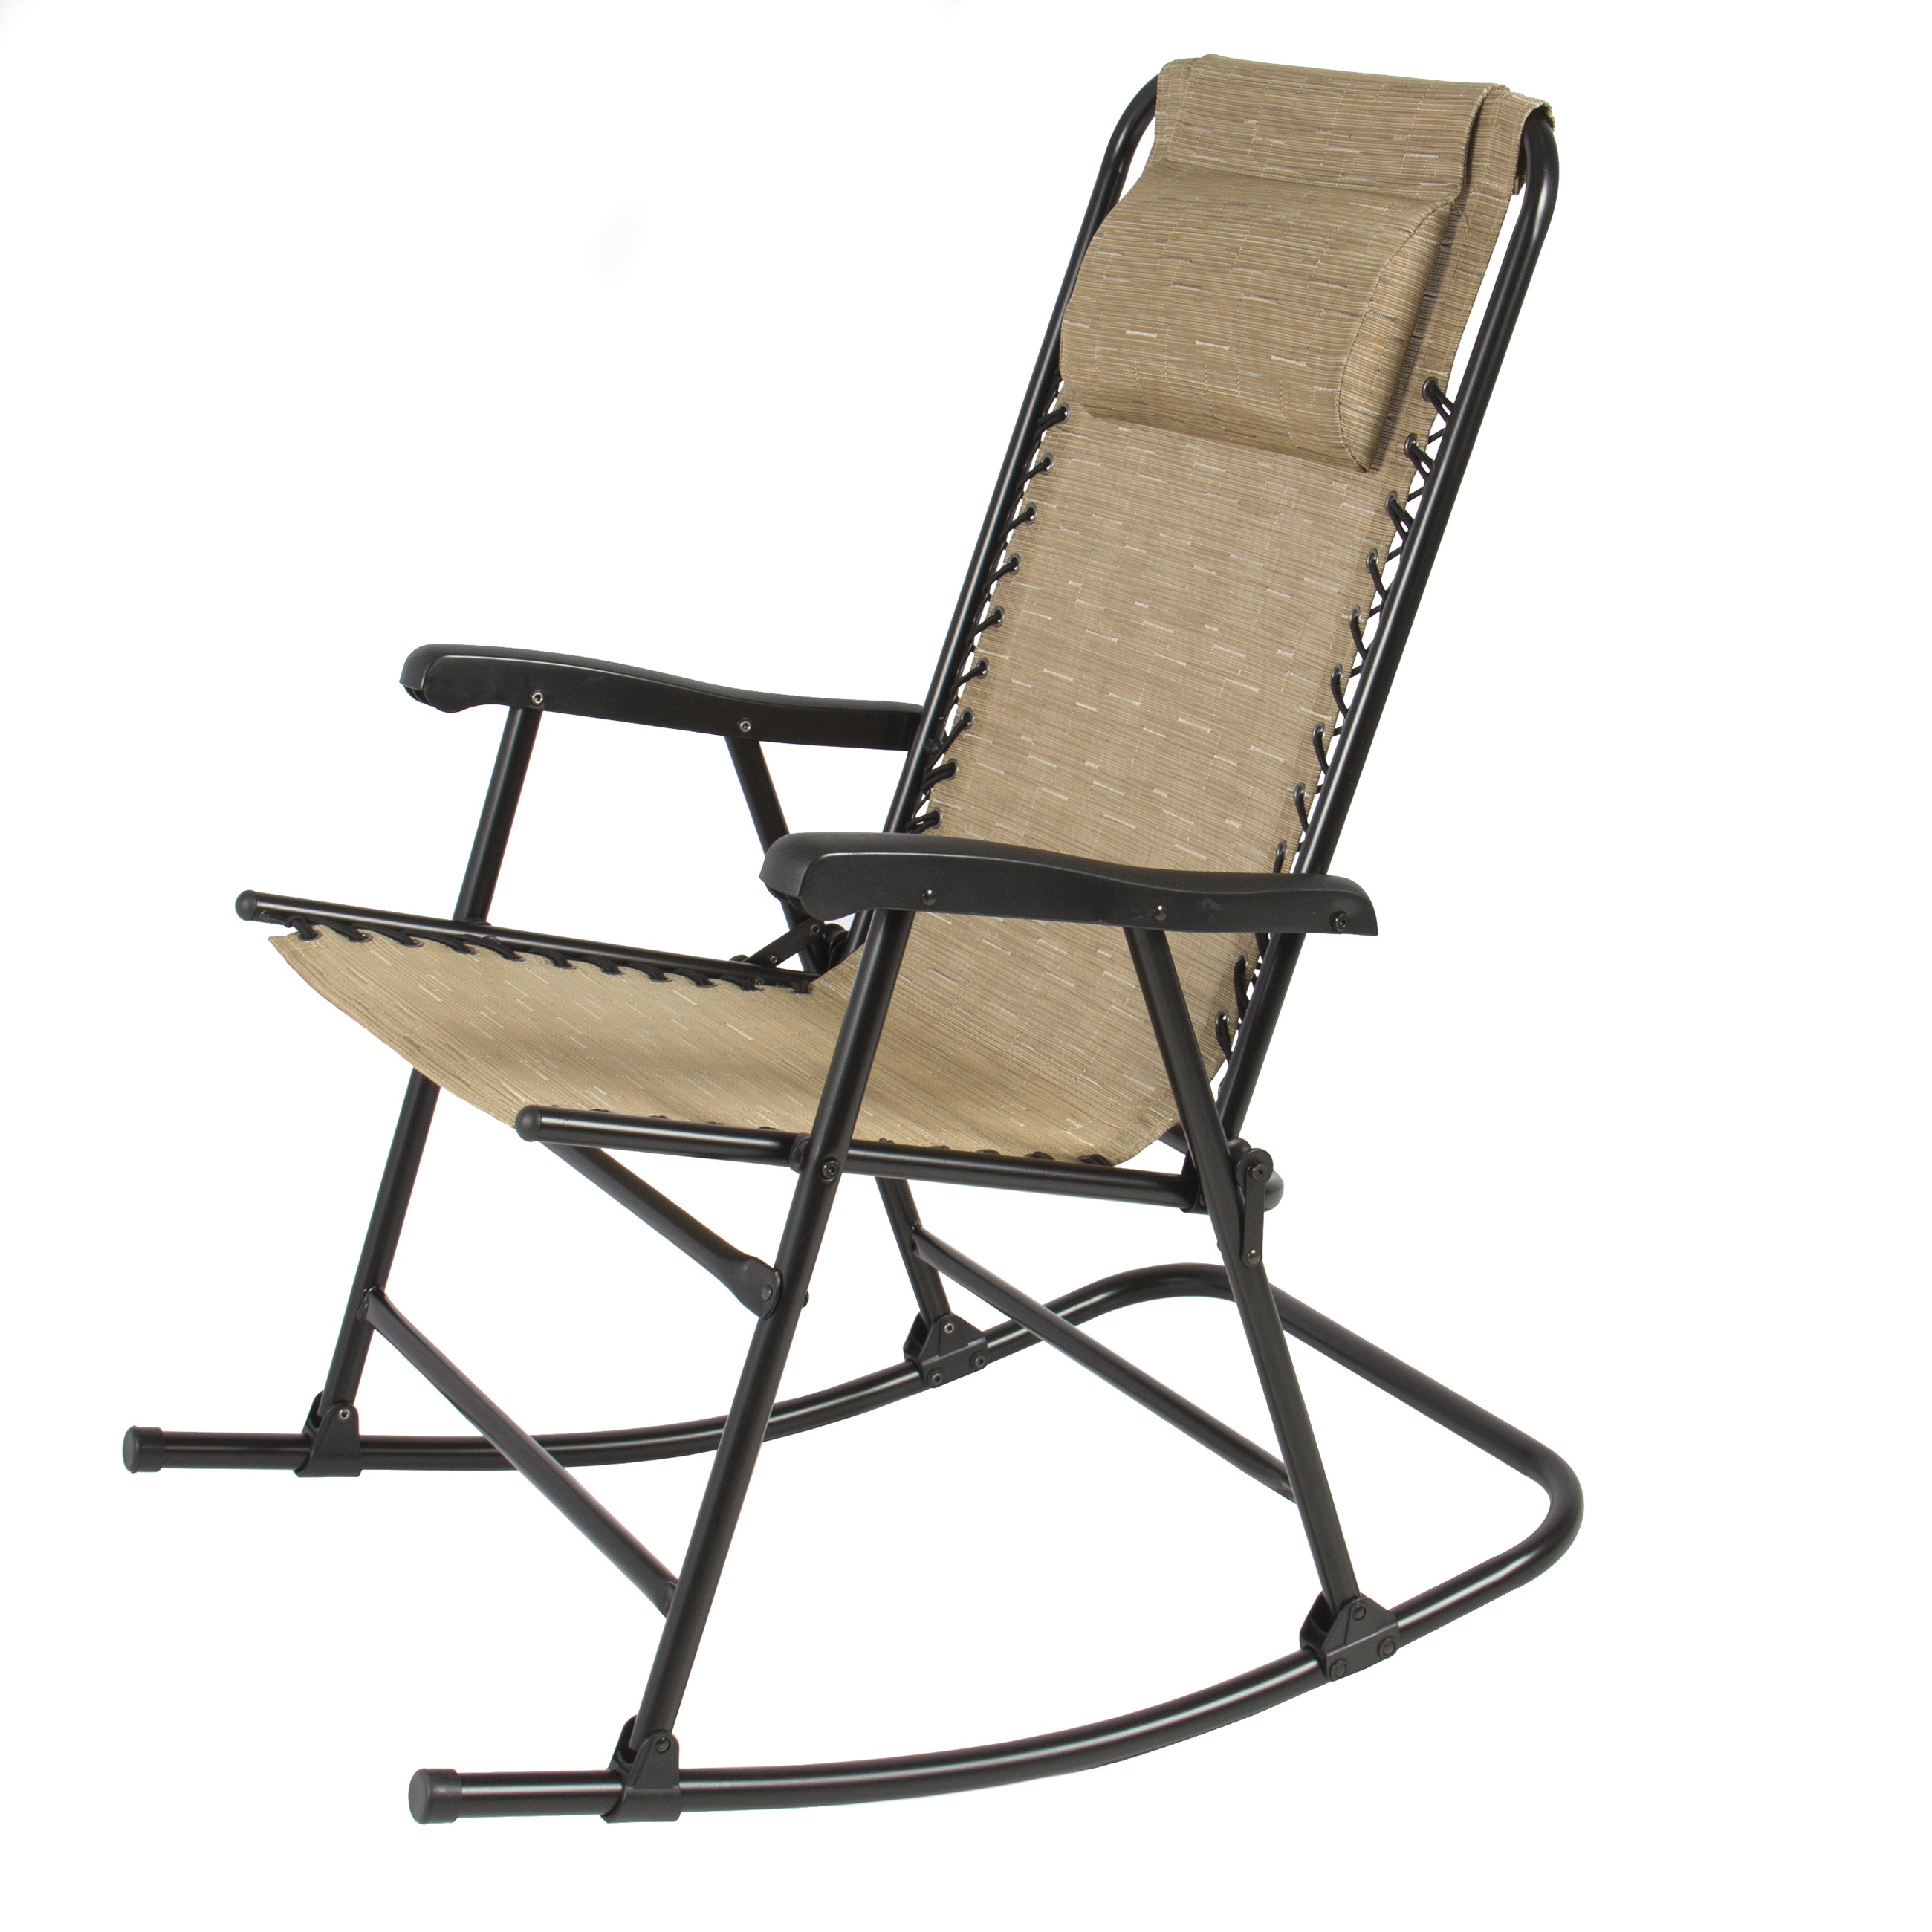 Chic Folding Rocking Chair Foldable Rocker Outdoor Patio Furniture Beige -  Walmart.com folding rocking chair